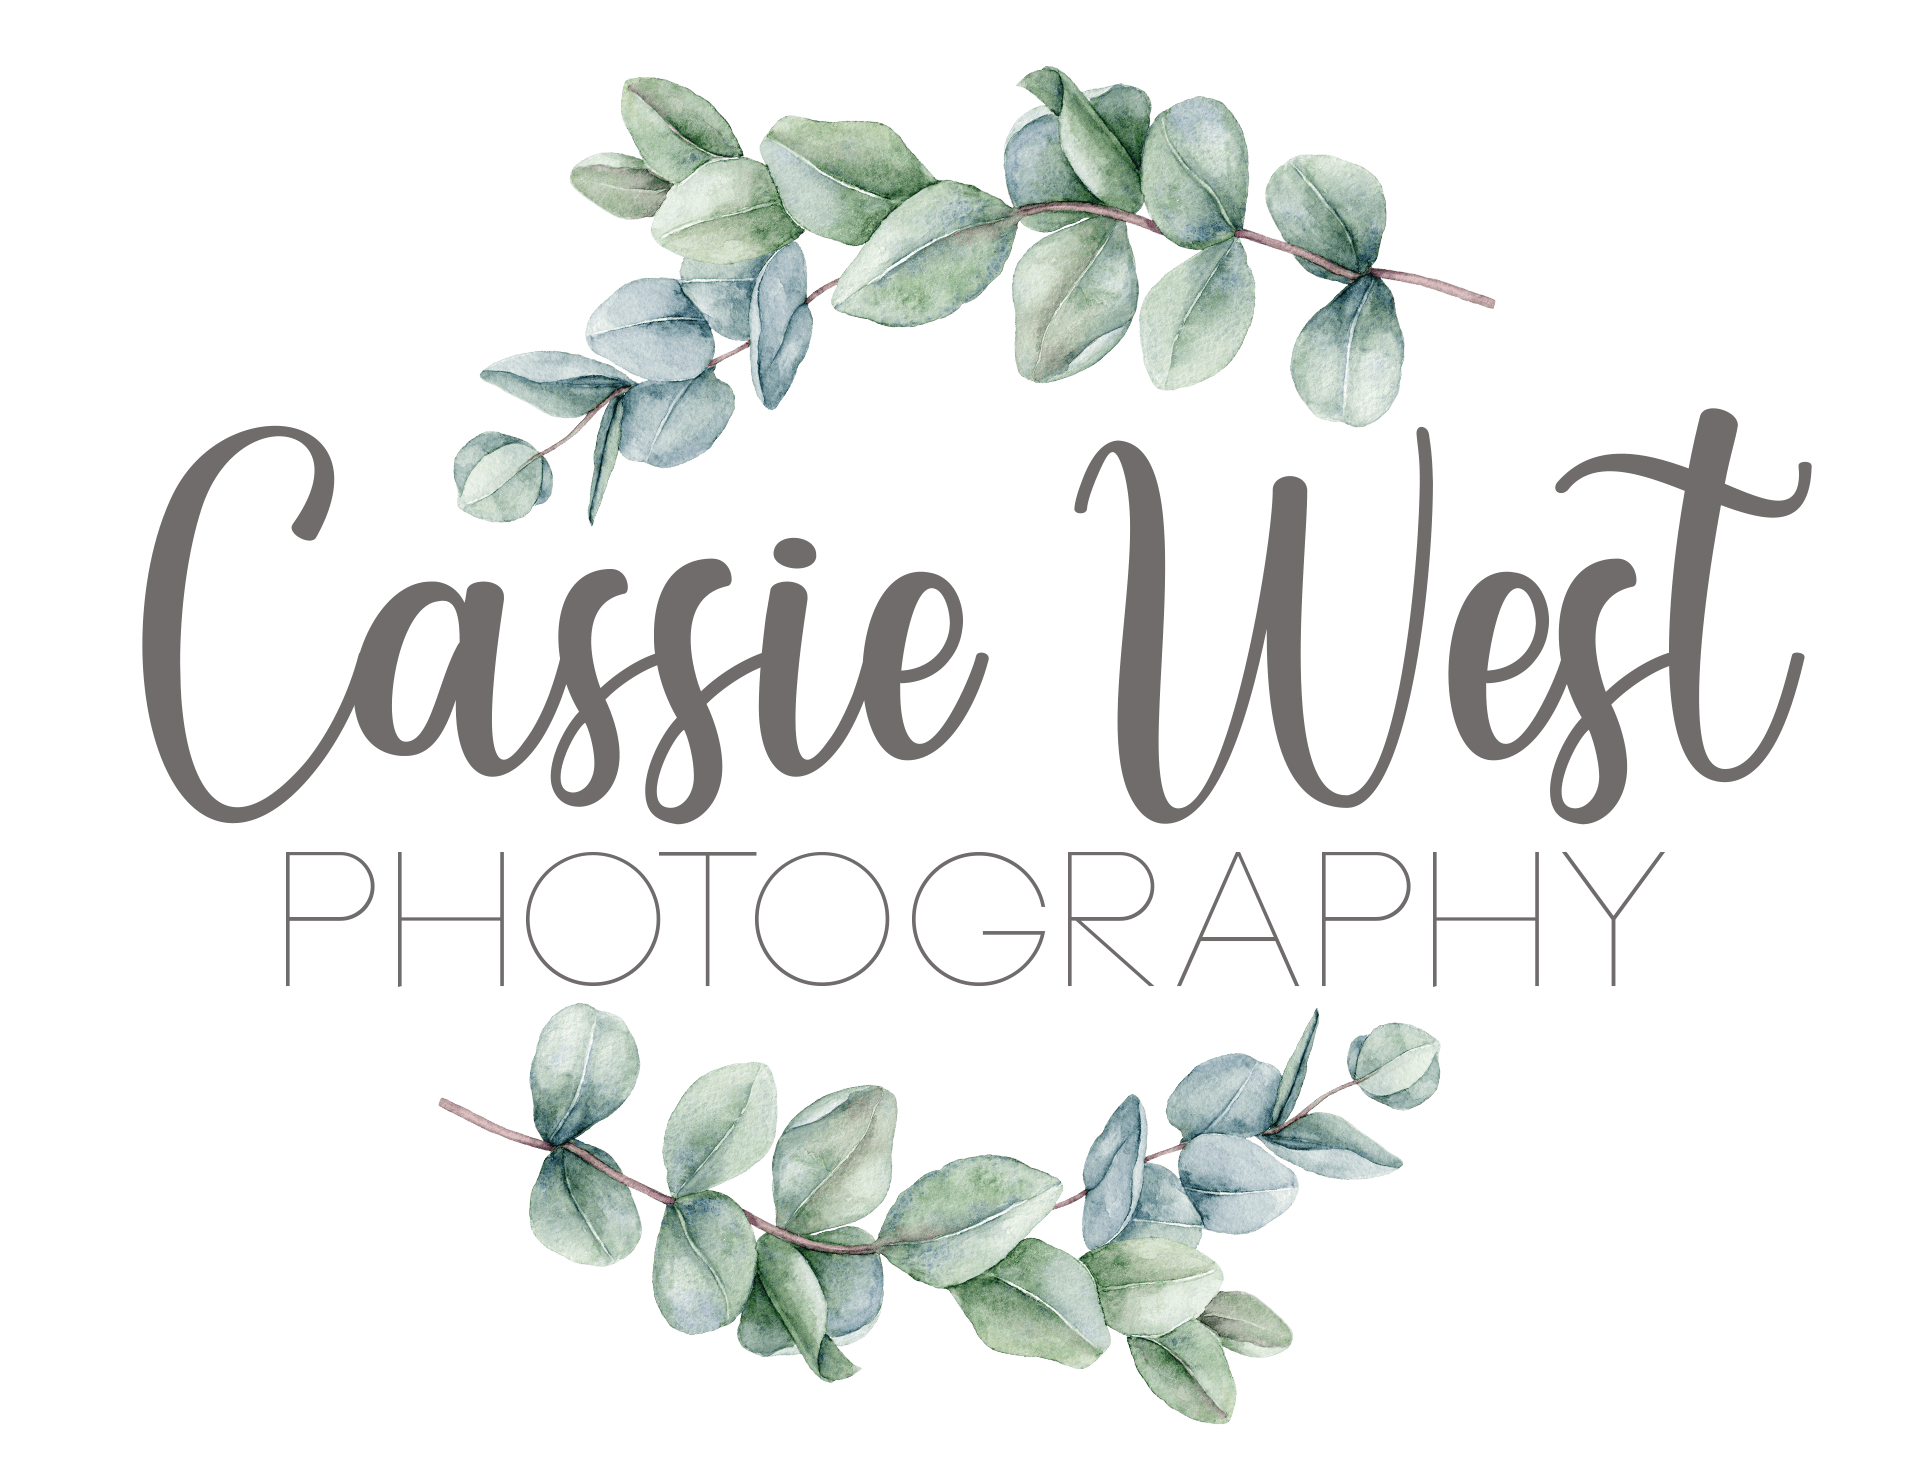 Cassie West Photography